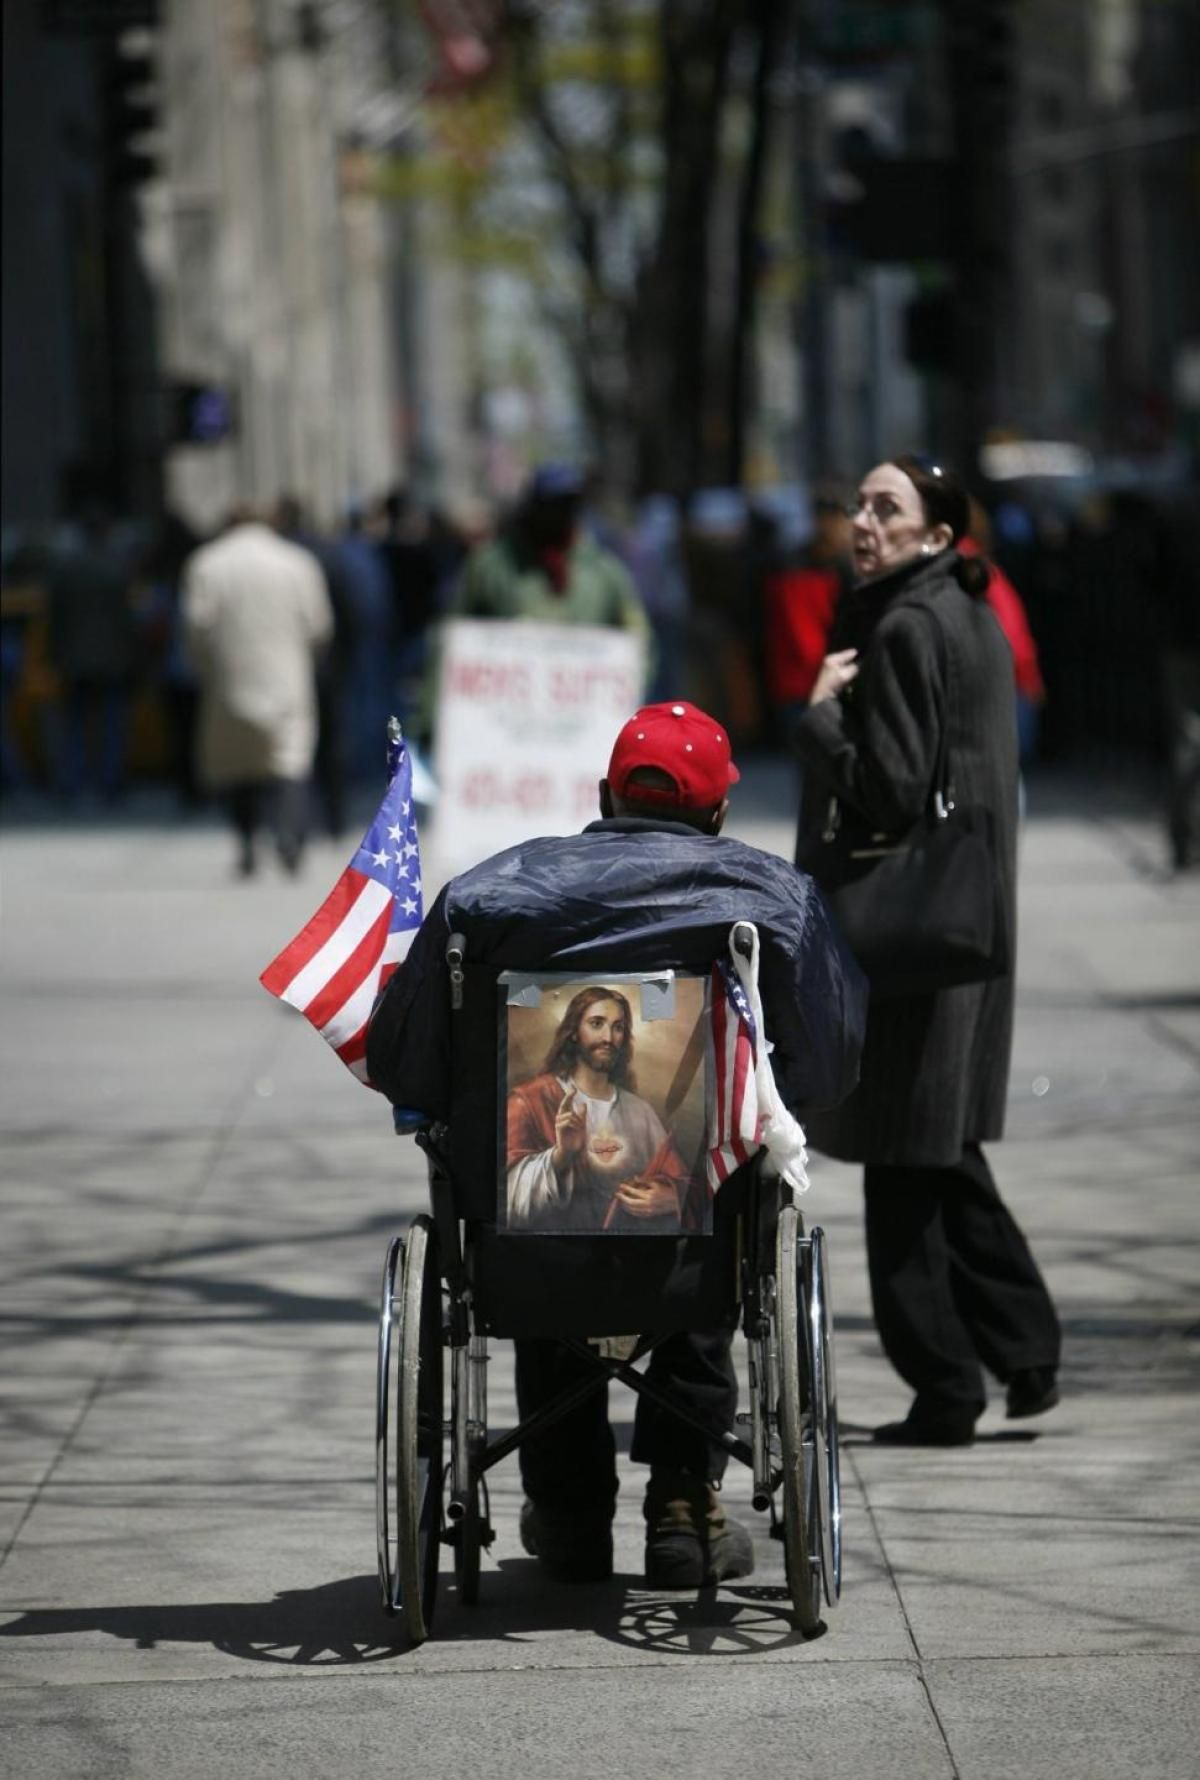 VA served more than 92,000 homeless veterans in 2009. With an estimated 500,000 veterans homeless at some time during the year, the VA reaches 20% of those in need, leaving 400,000 veterans without supportive services.